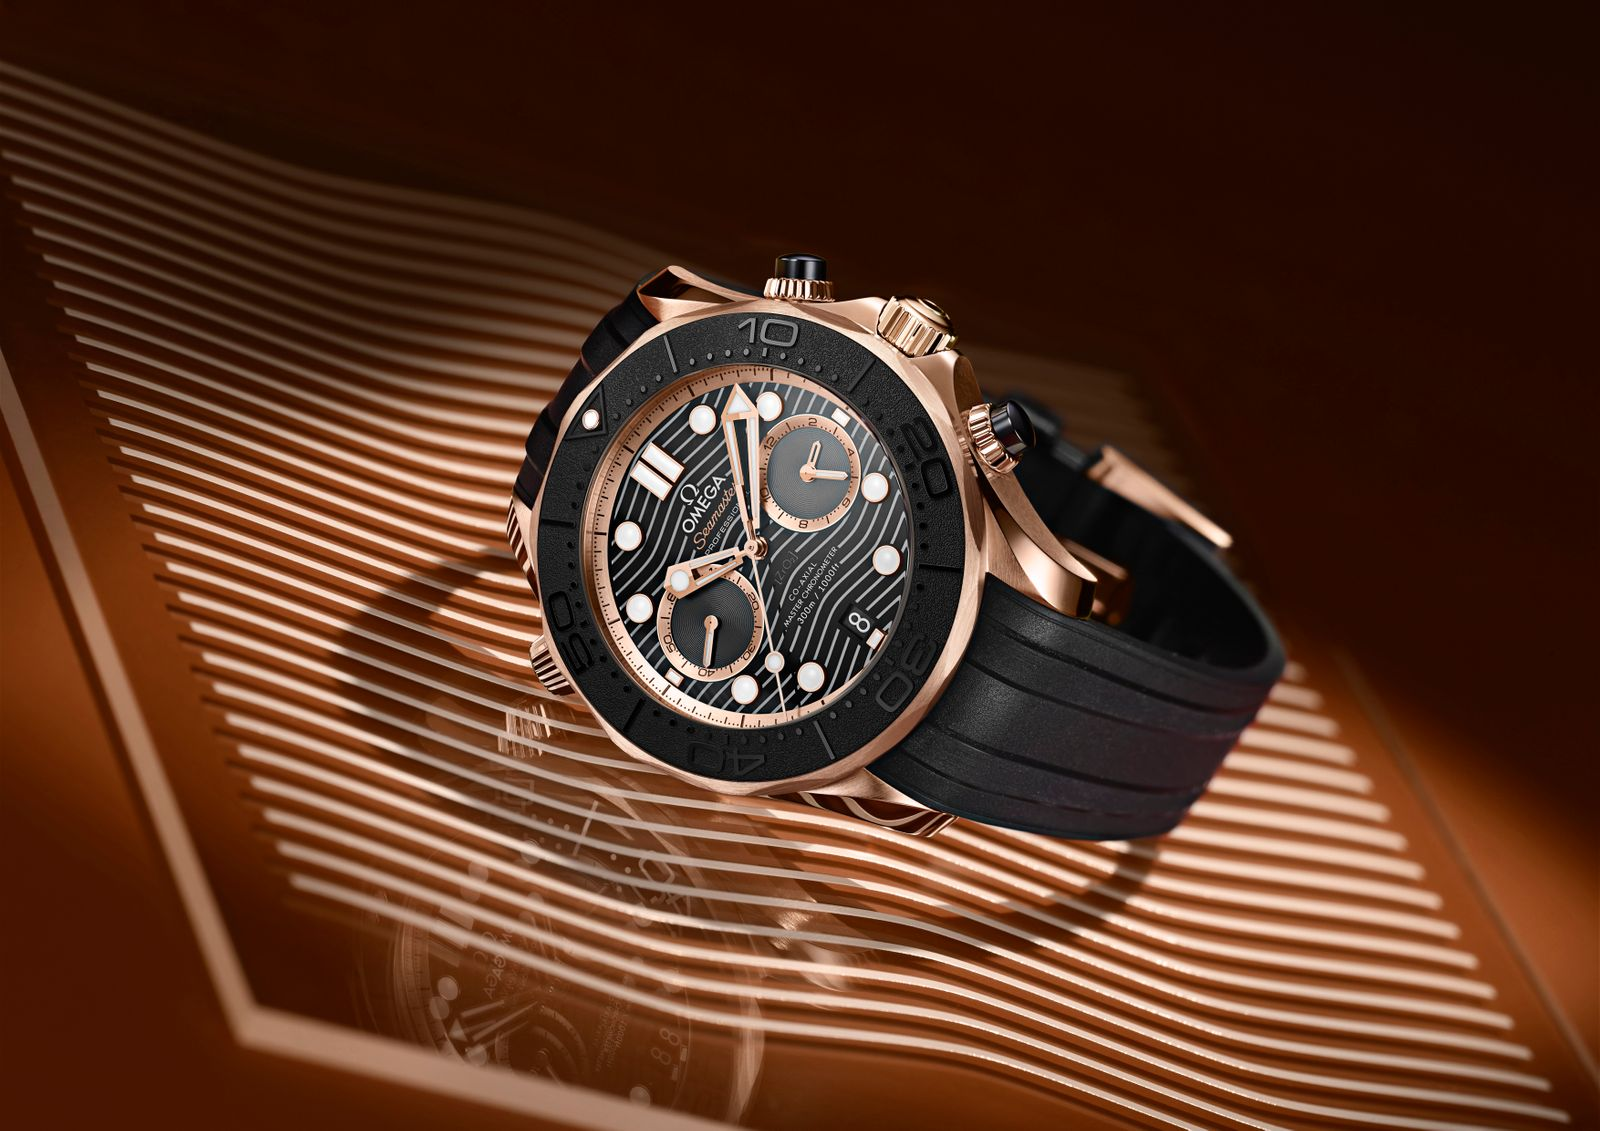 484012f67 Omega Introduces the Seamaster Diver 300m Chronograph   SJX Watches